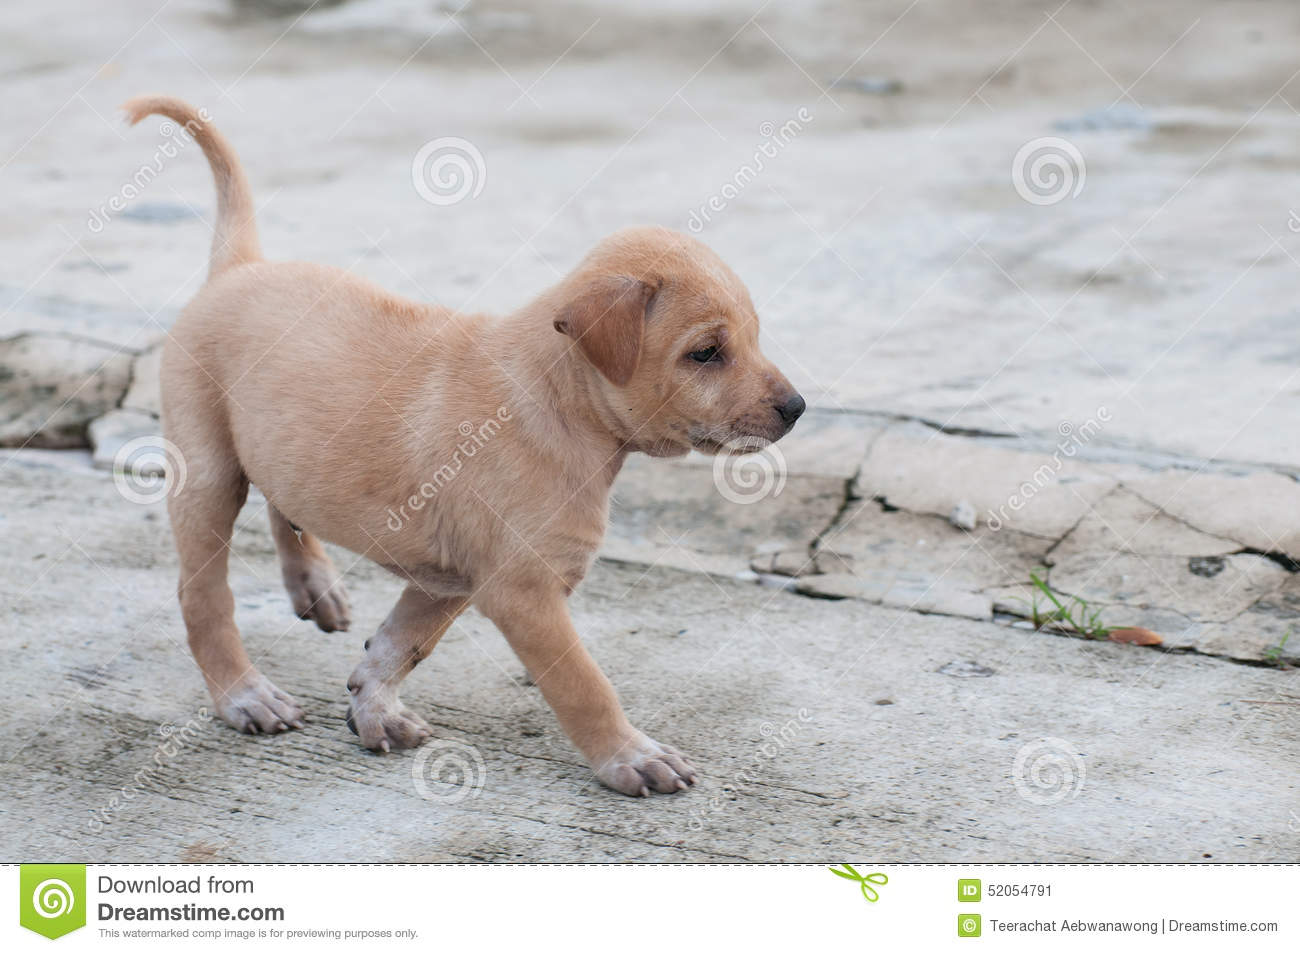 Puppy Dog Alone On The Street Stock Image Image Of Happy